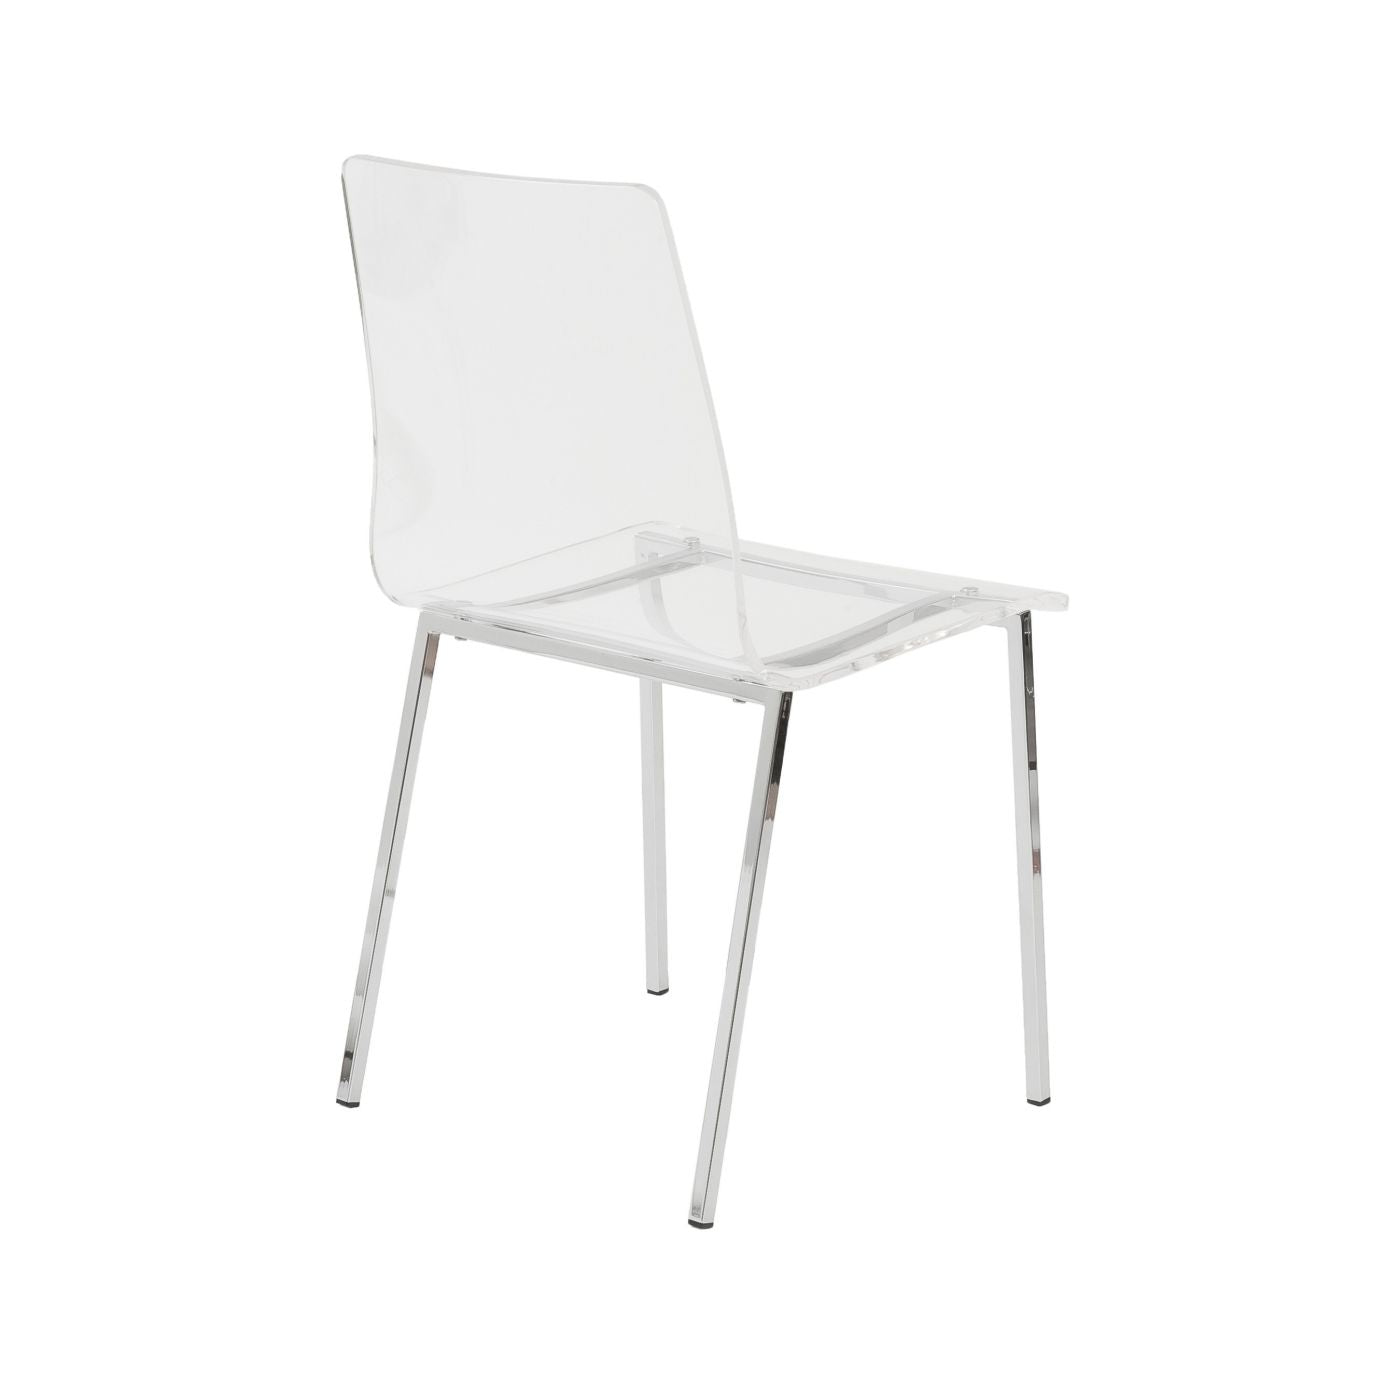 Brilliant Euro Style Euro 80940Clr Chloe Dining Side Chair In Clear Acrylic With Chrome Legs Set Of 4 Caraccident5 Cool Chair Designs And Ideas Caraccident5Info